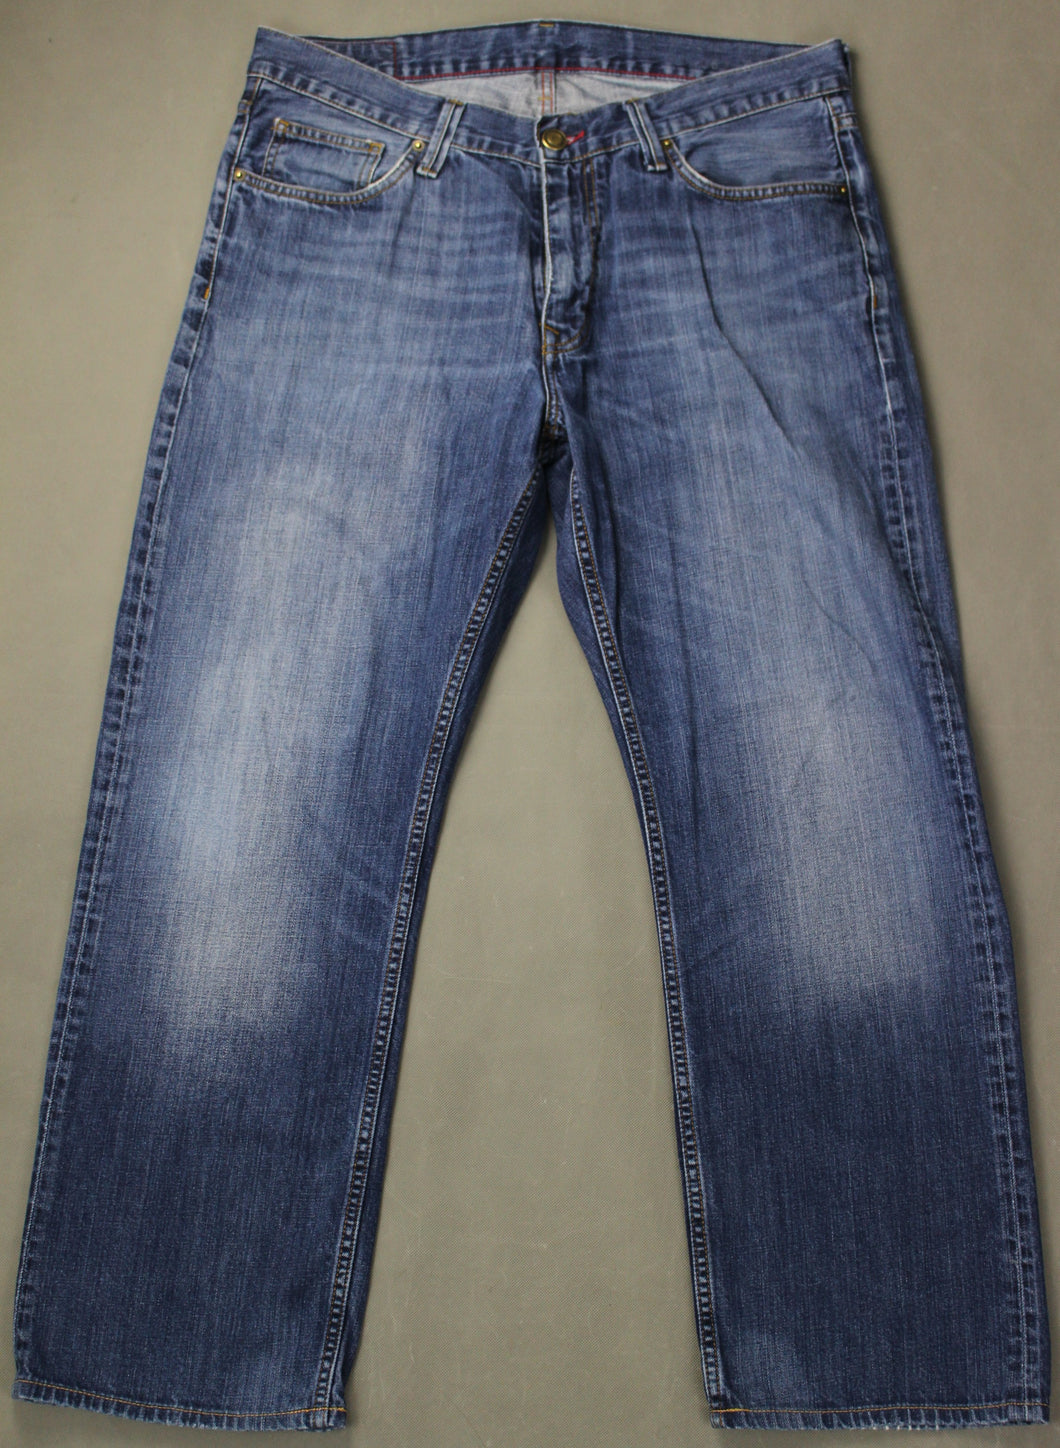 TOMMY HILFIGER Mens Blue Denim MADISON JEANS Size Waist 36